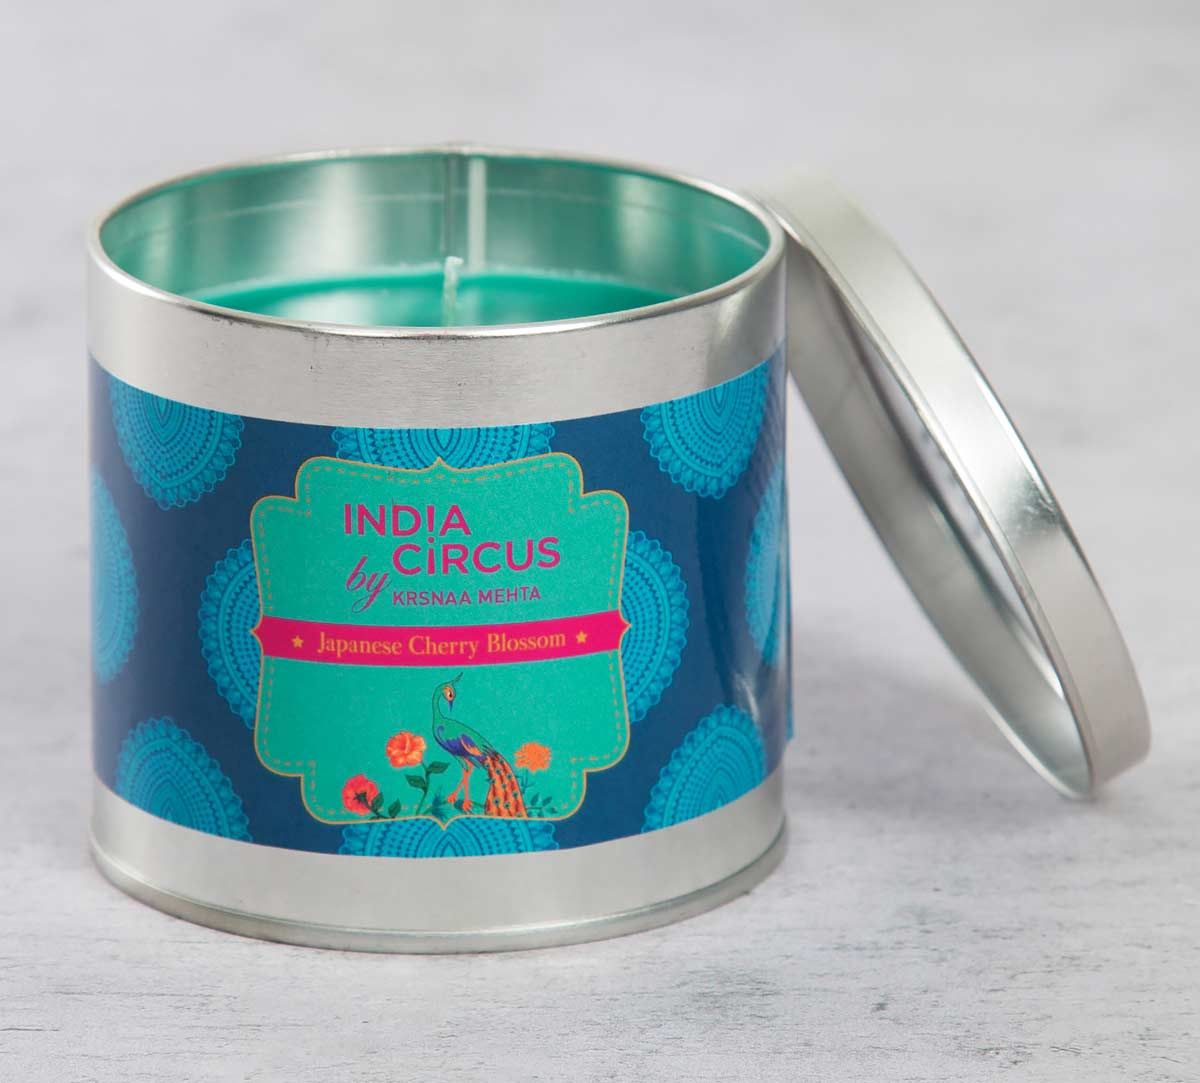 India Circus Japanese Cherry Blossom Tin Candle